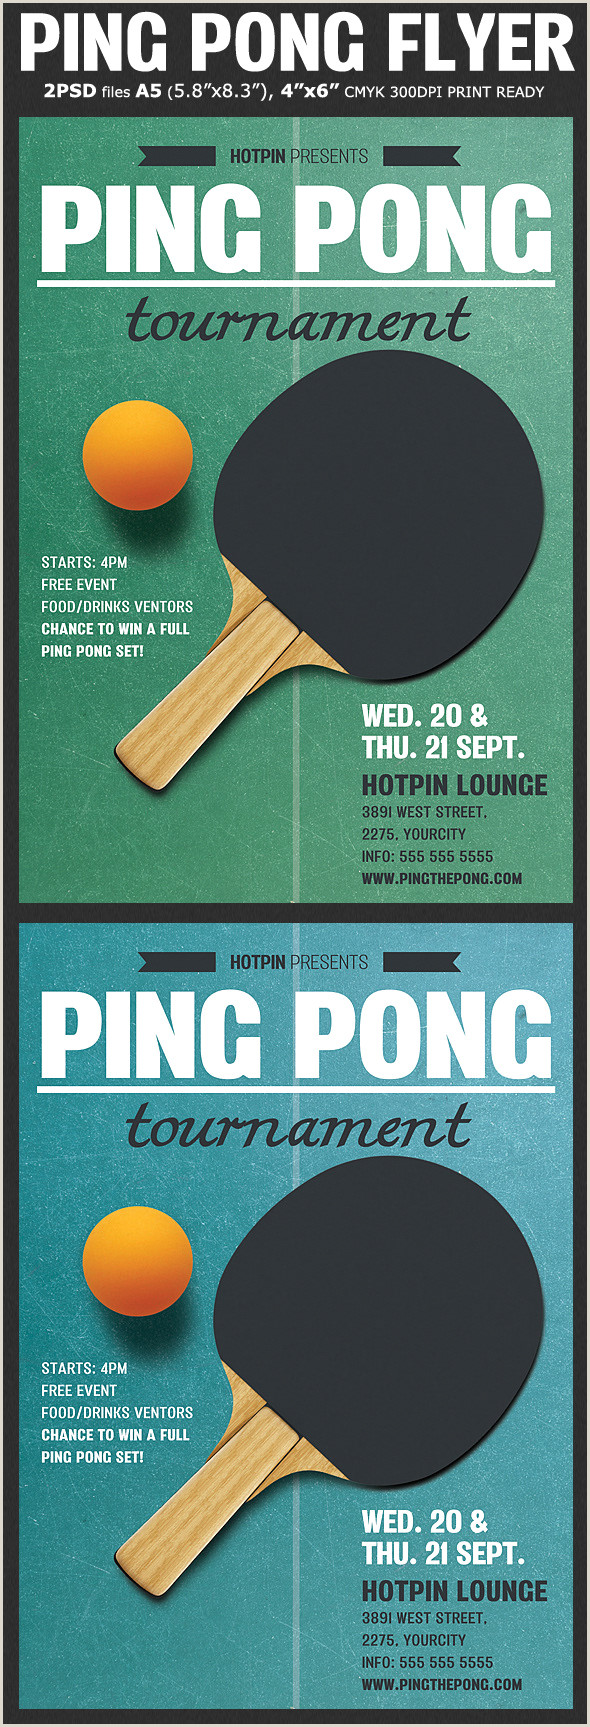 Ping Pong tournament Flyer Template Hotpin Templates Ping Pong Flyer Template